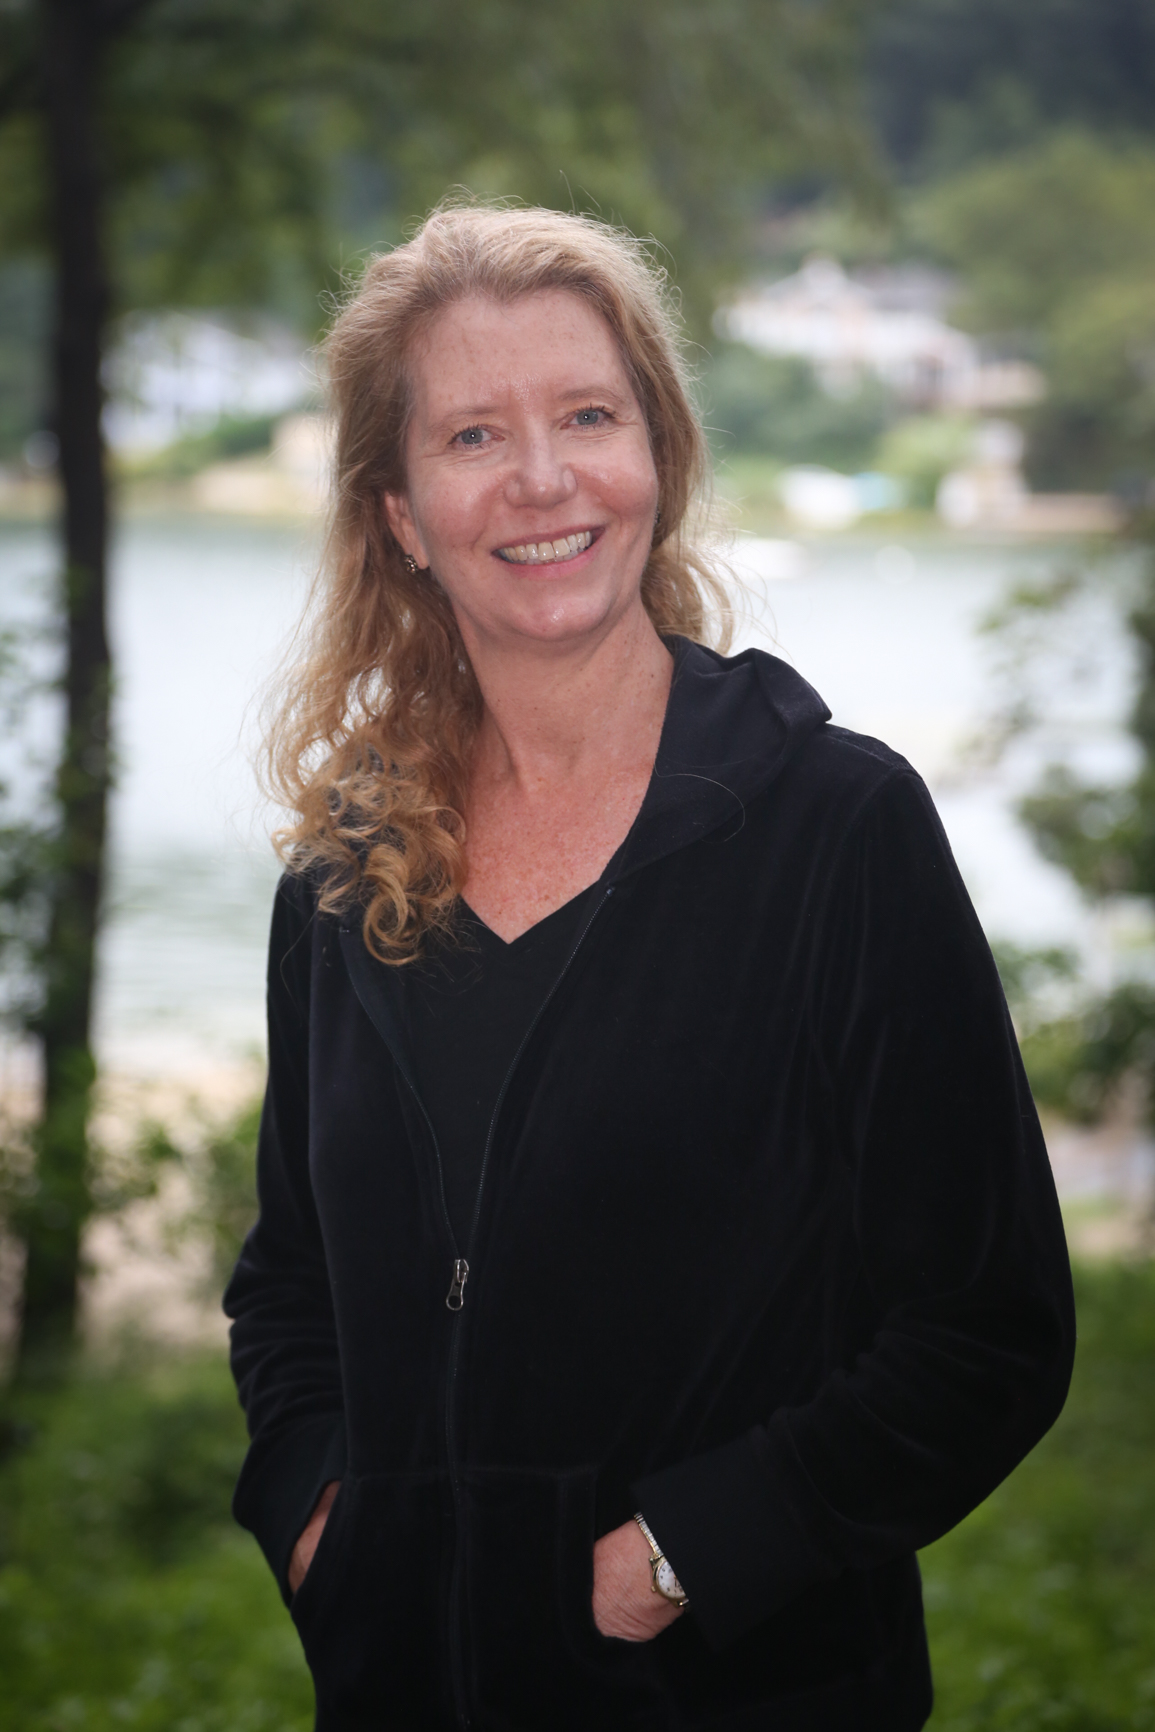 Jane Neithardt, Assistant Teacher    years at lol:  11 years   experience : NYS permanent public school teacher certification, ms in education from dowling college, 26 years classroom experience